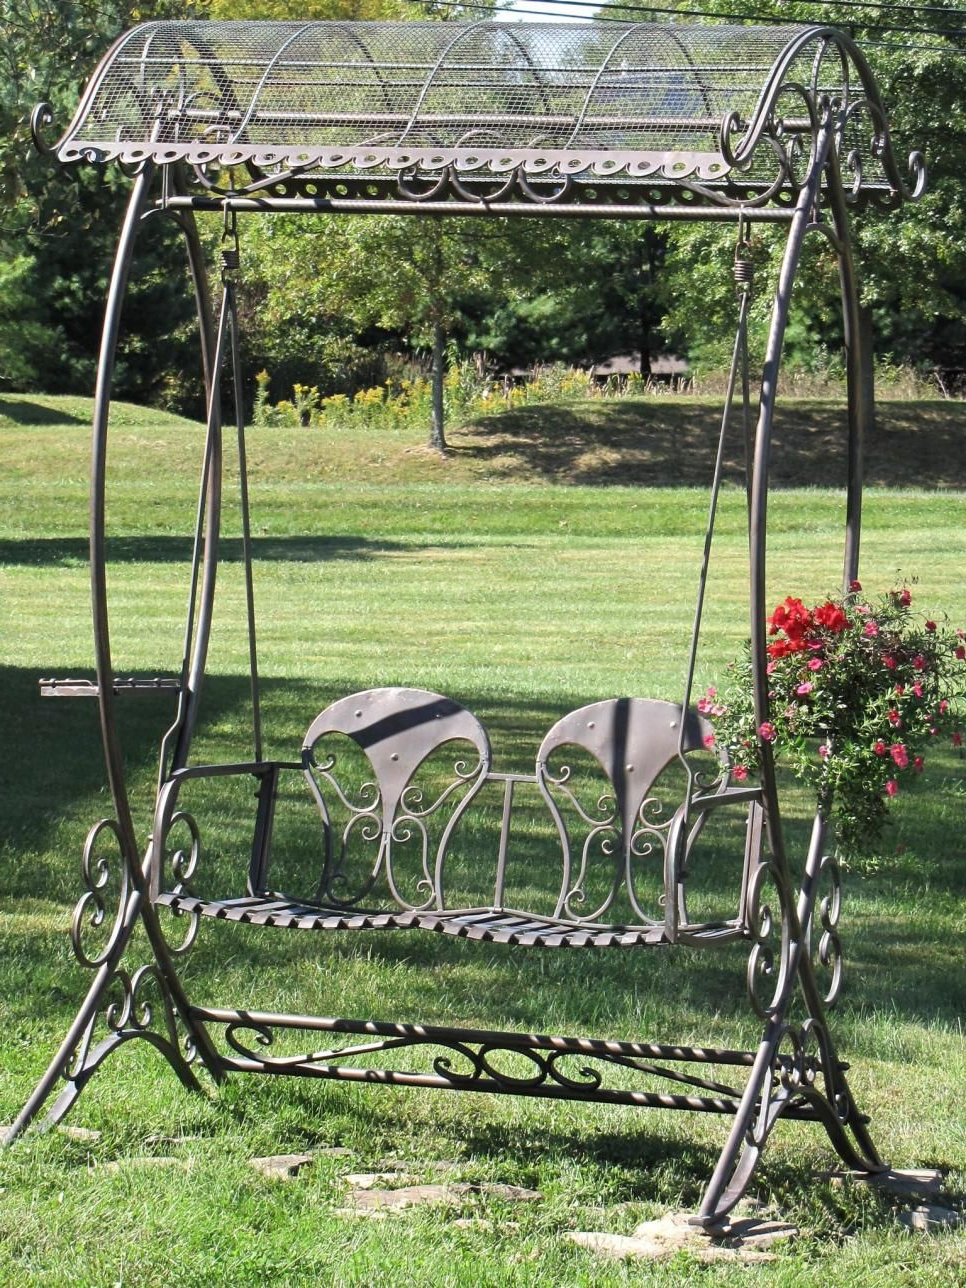 2 Person Antique Black Iron Outdoor Swings Intended For Recent Garden Swing Design Ideas (View 13 of 25)